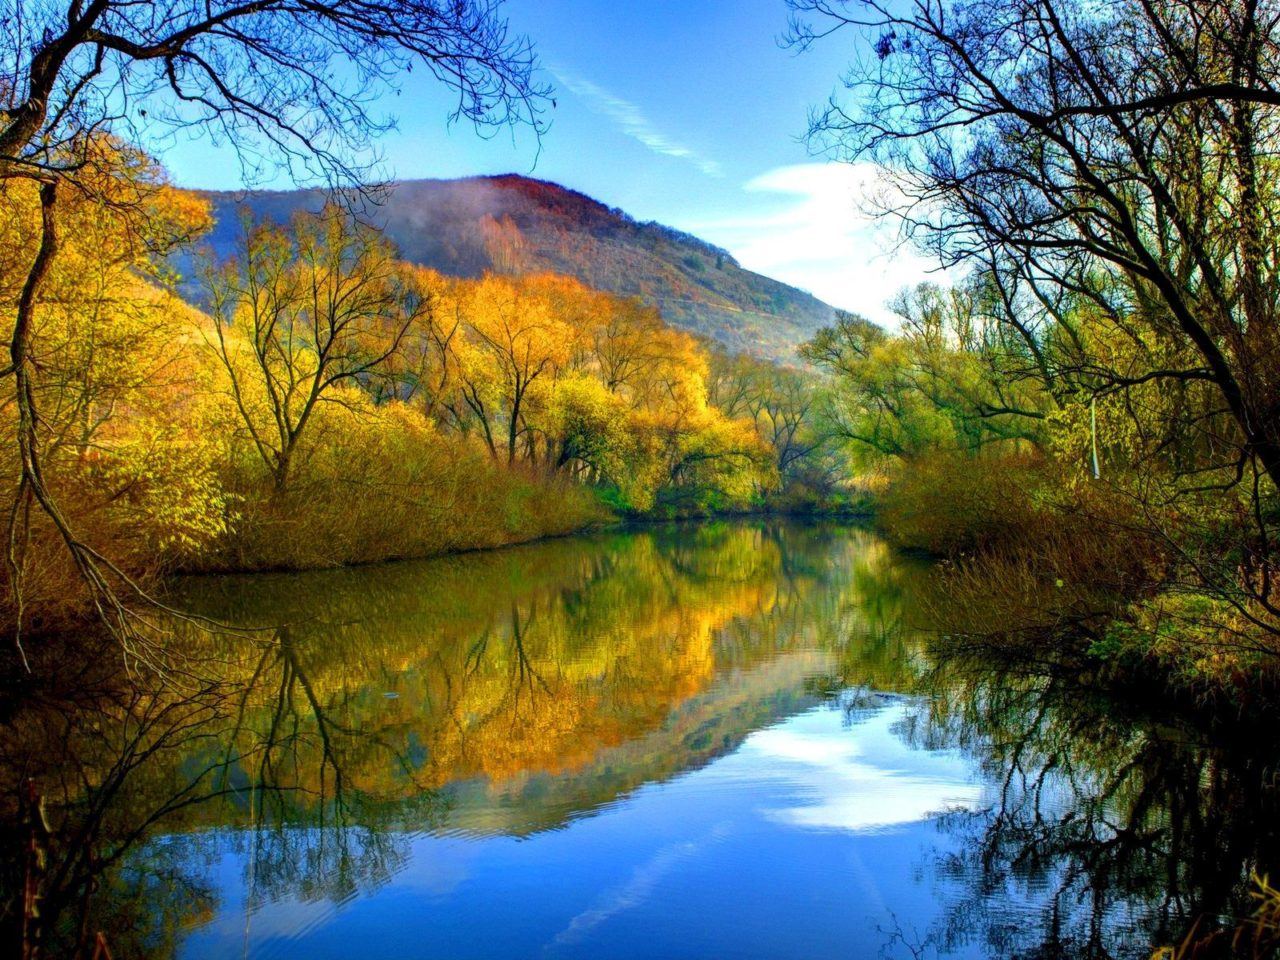 Disney Fall Desktop Wallpaper Fall River Peaceful Water Willow With Yellow Leaves Blue